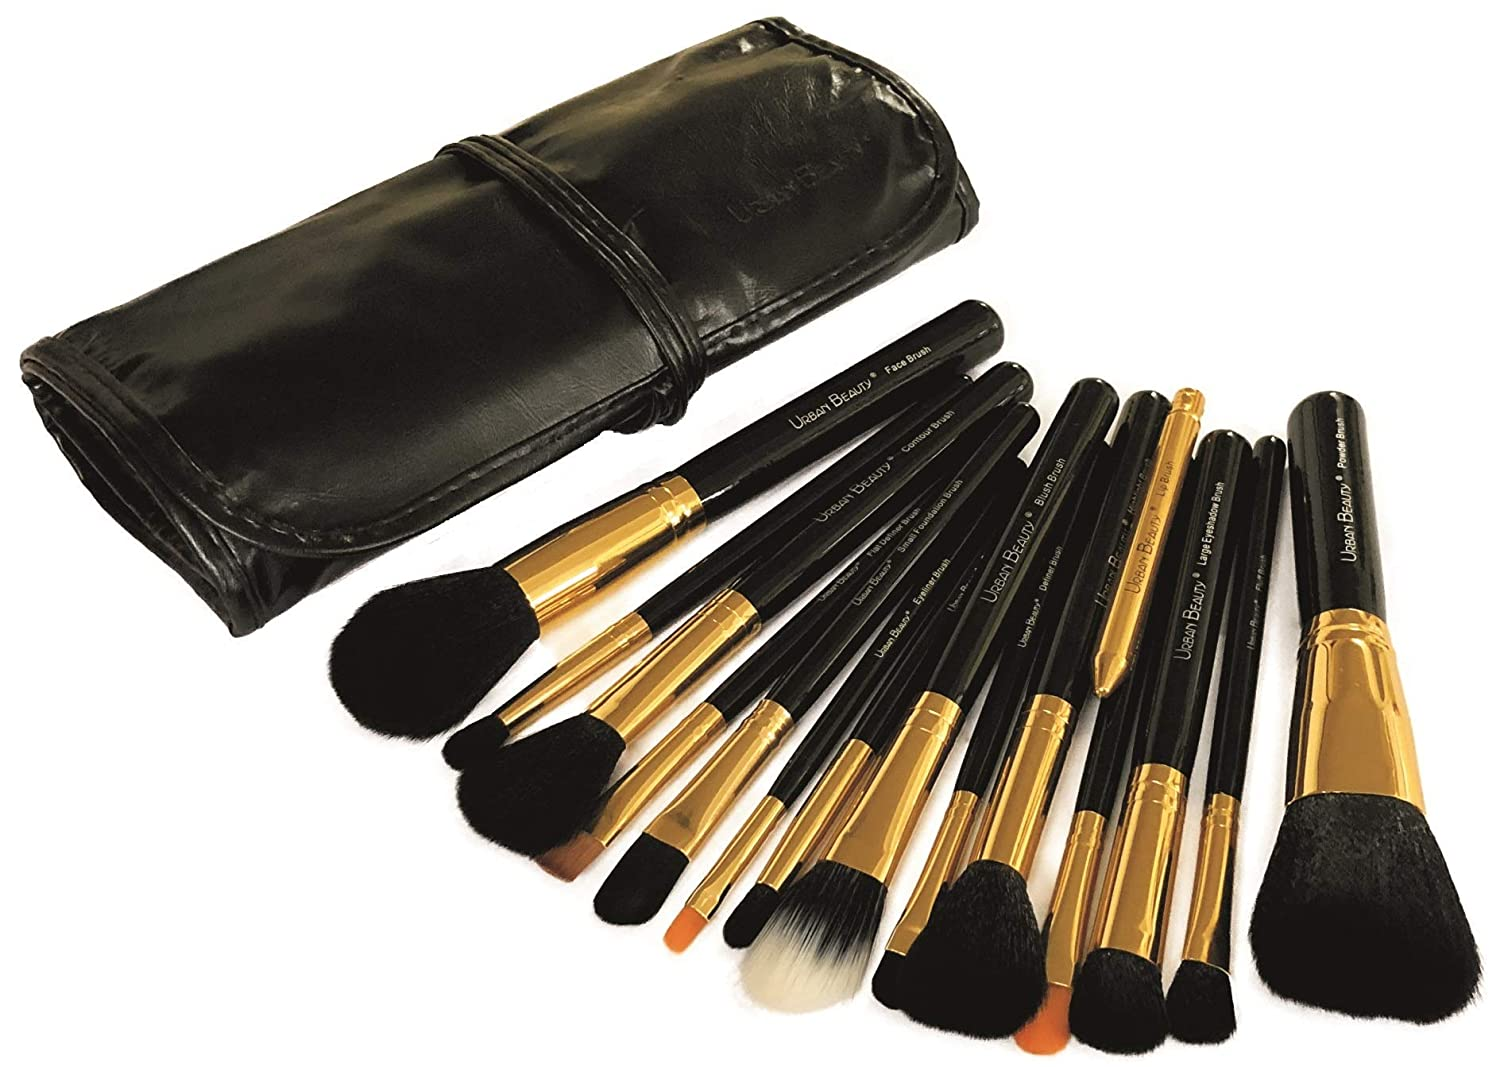 Urban Beuaty Makeup Brush Set with Storage Pouch Model UB-115 (Black and Gold)-15 Pieces